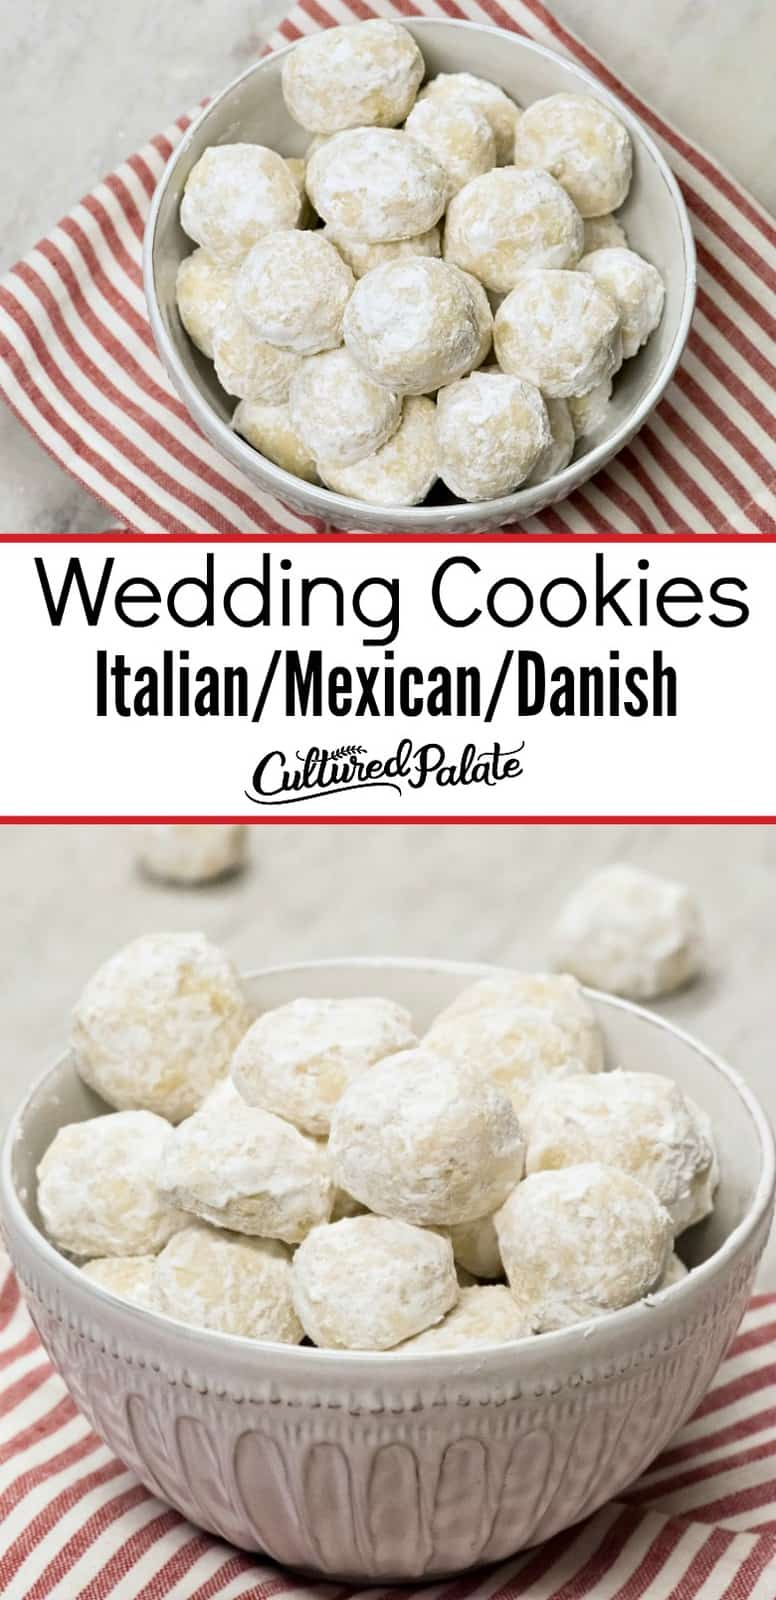 A white bowl of Italian Wedding cookies also known as Mexican Wedding Cookies on a red and white striped napkin - 2 images, close up and from above with text overlay